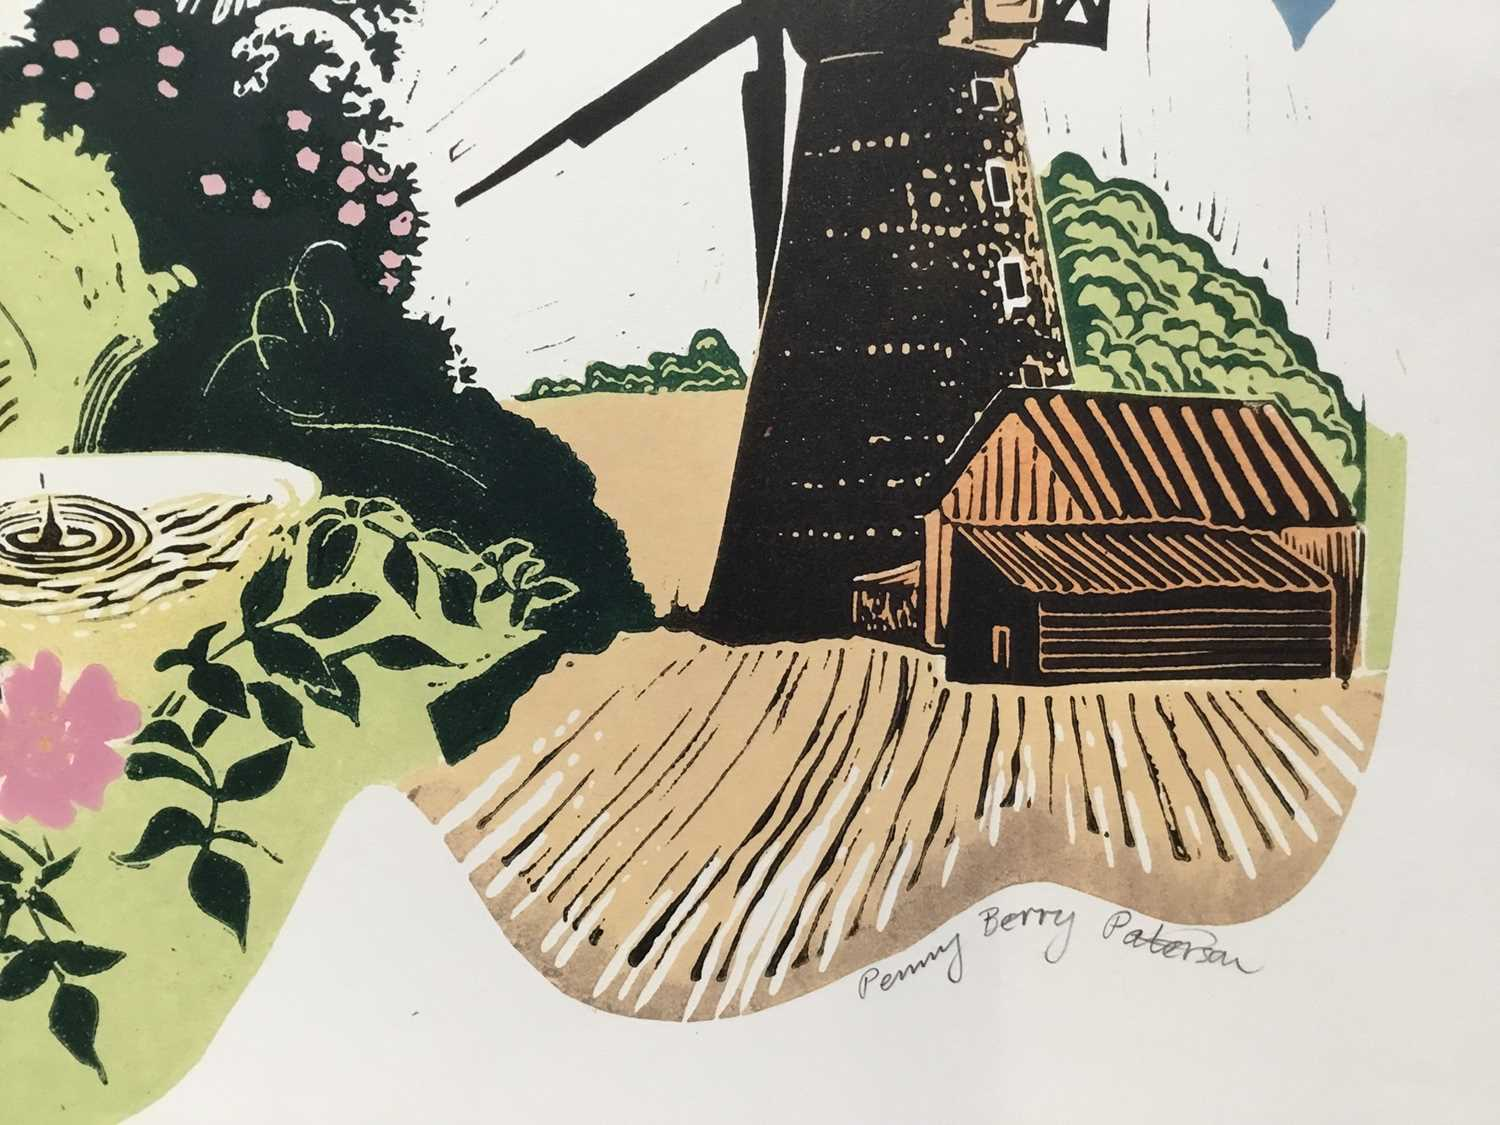 Penny Berry Paterson (1941-2021) colour woodcut print, Barnack Mill, signed titled and numbered 17/2 - Image 4 of 4